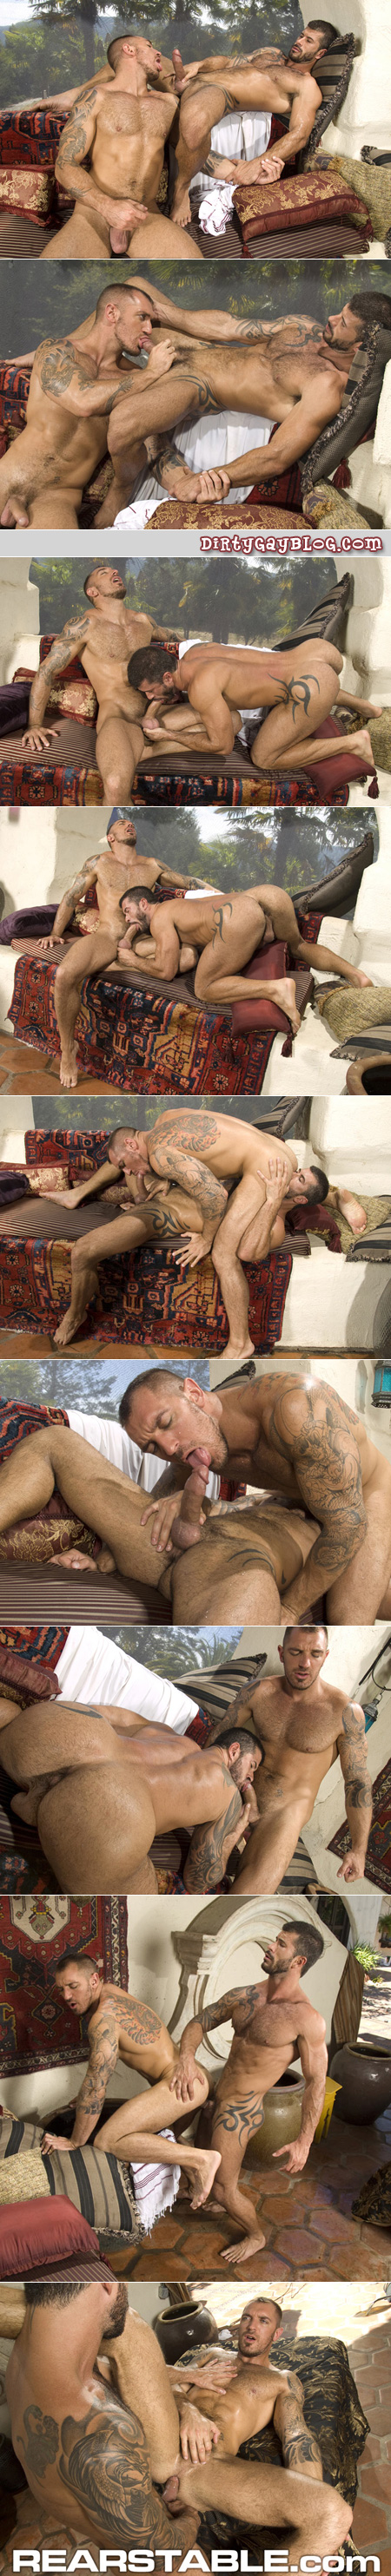 Two hairy, beefy studs play with each other's muscle cocks in the hot desert sun.